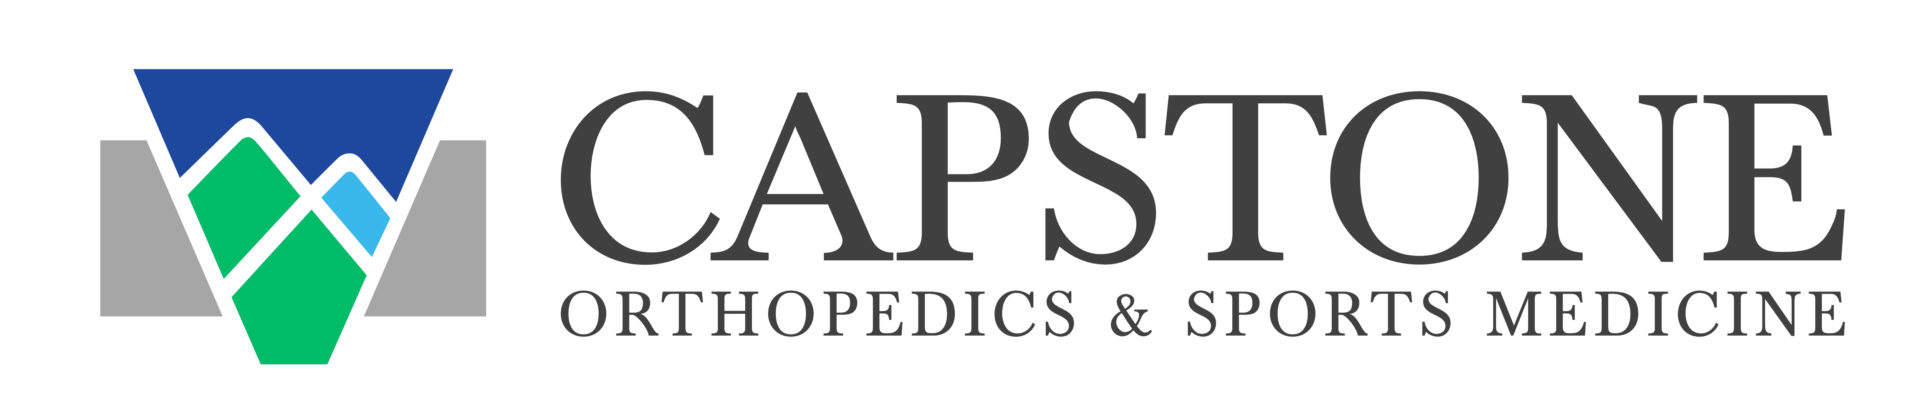 Capstone Orthopedics